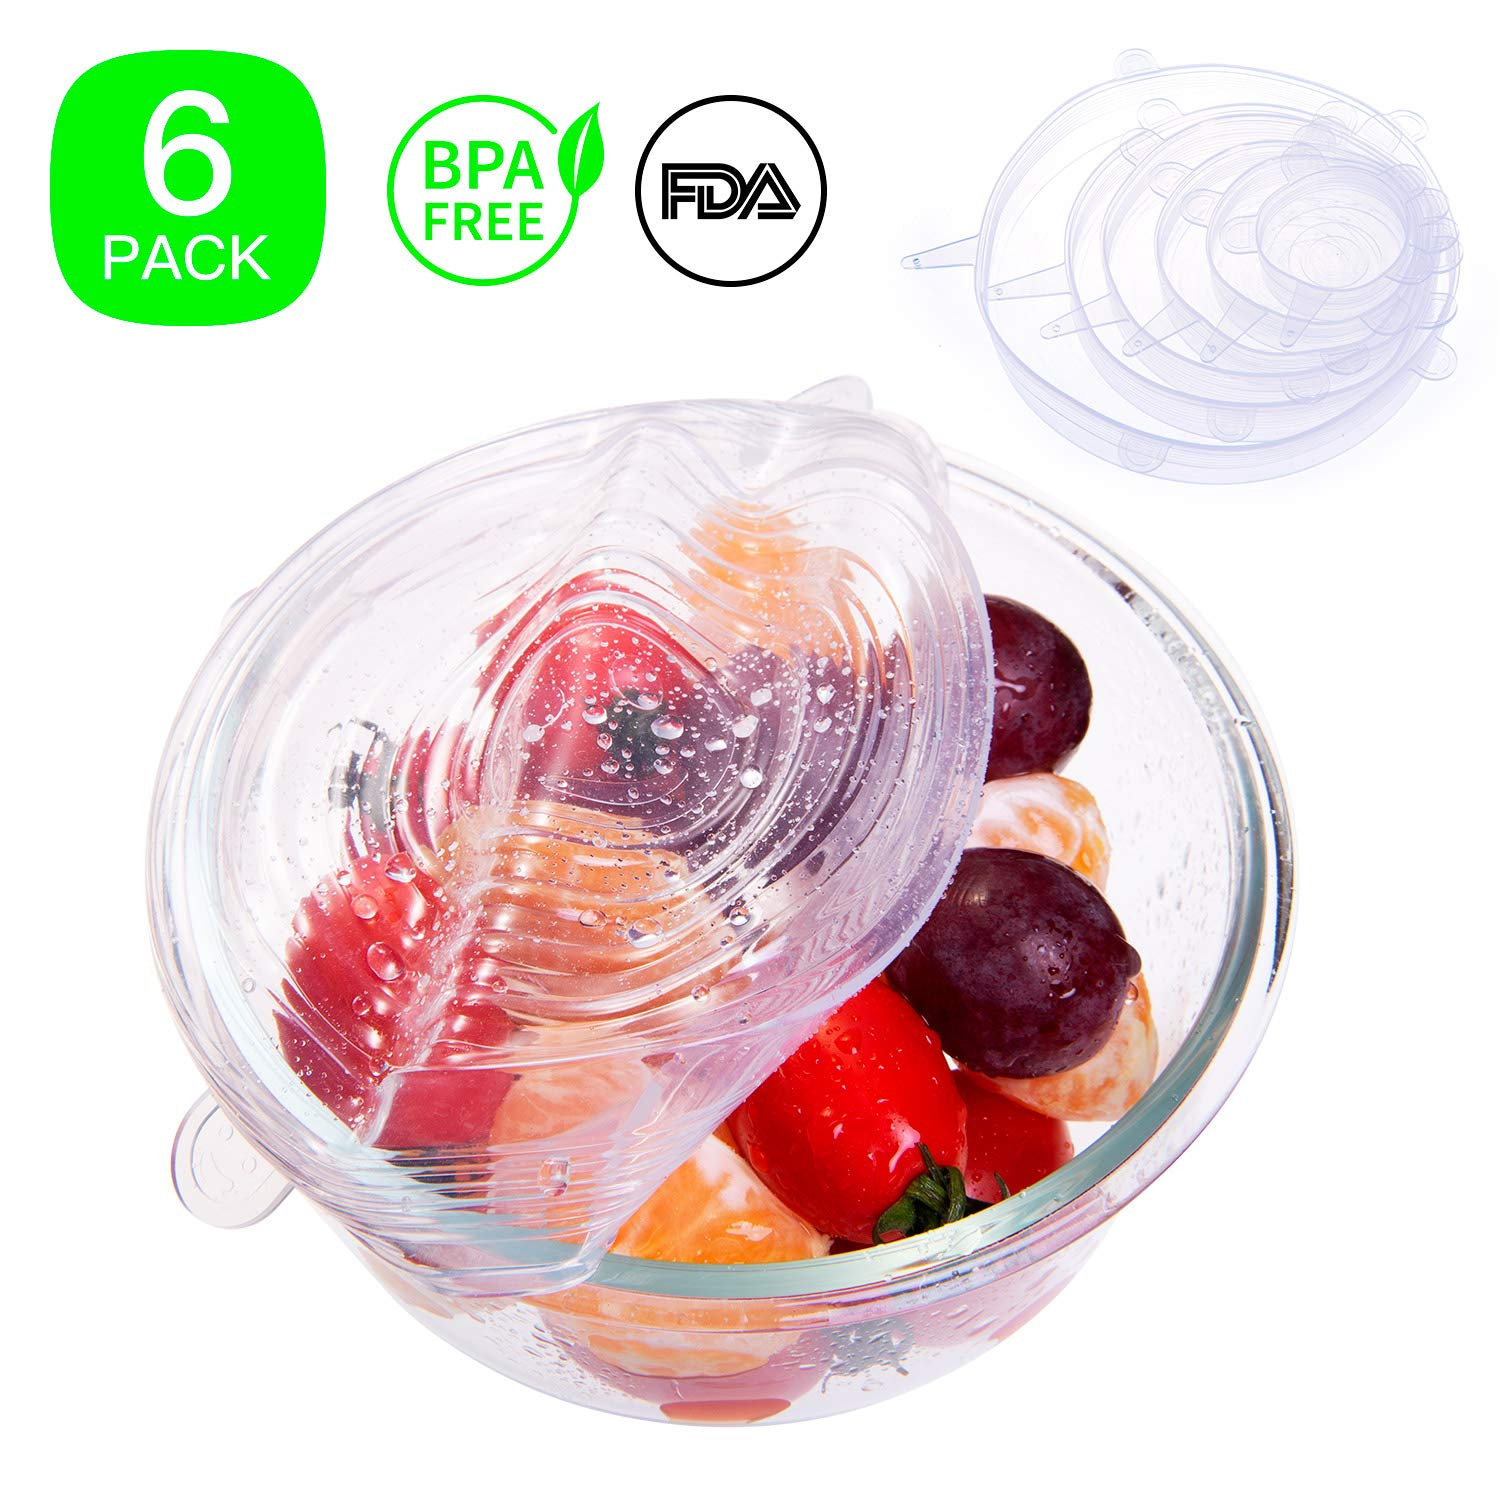 Silicone Stretch Lids, 6-Pack Various Sizes Lids For Kitchen Bowls, Durable and No Tear Food Preservation Silicone Stretch Lids